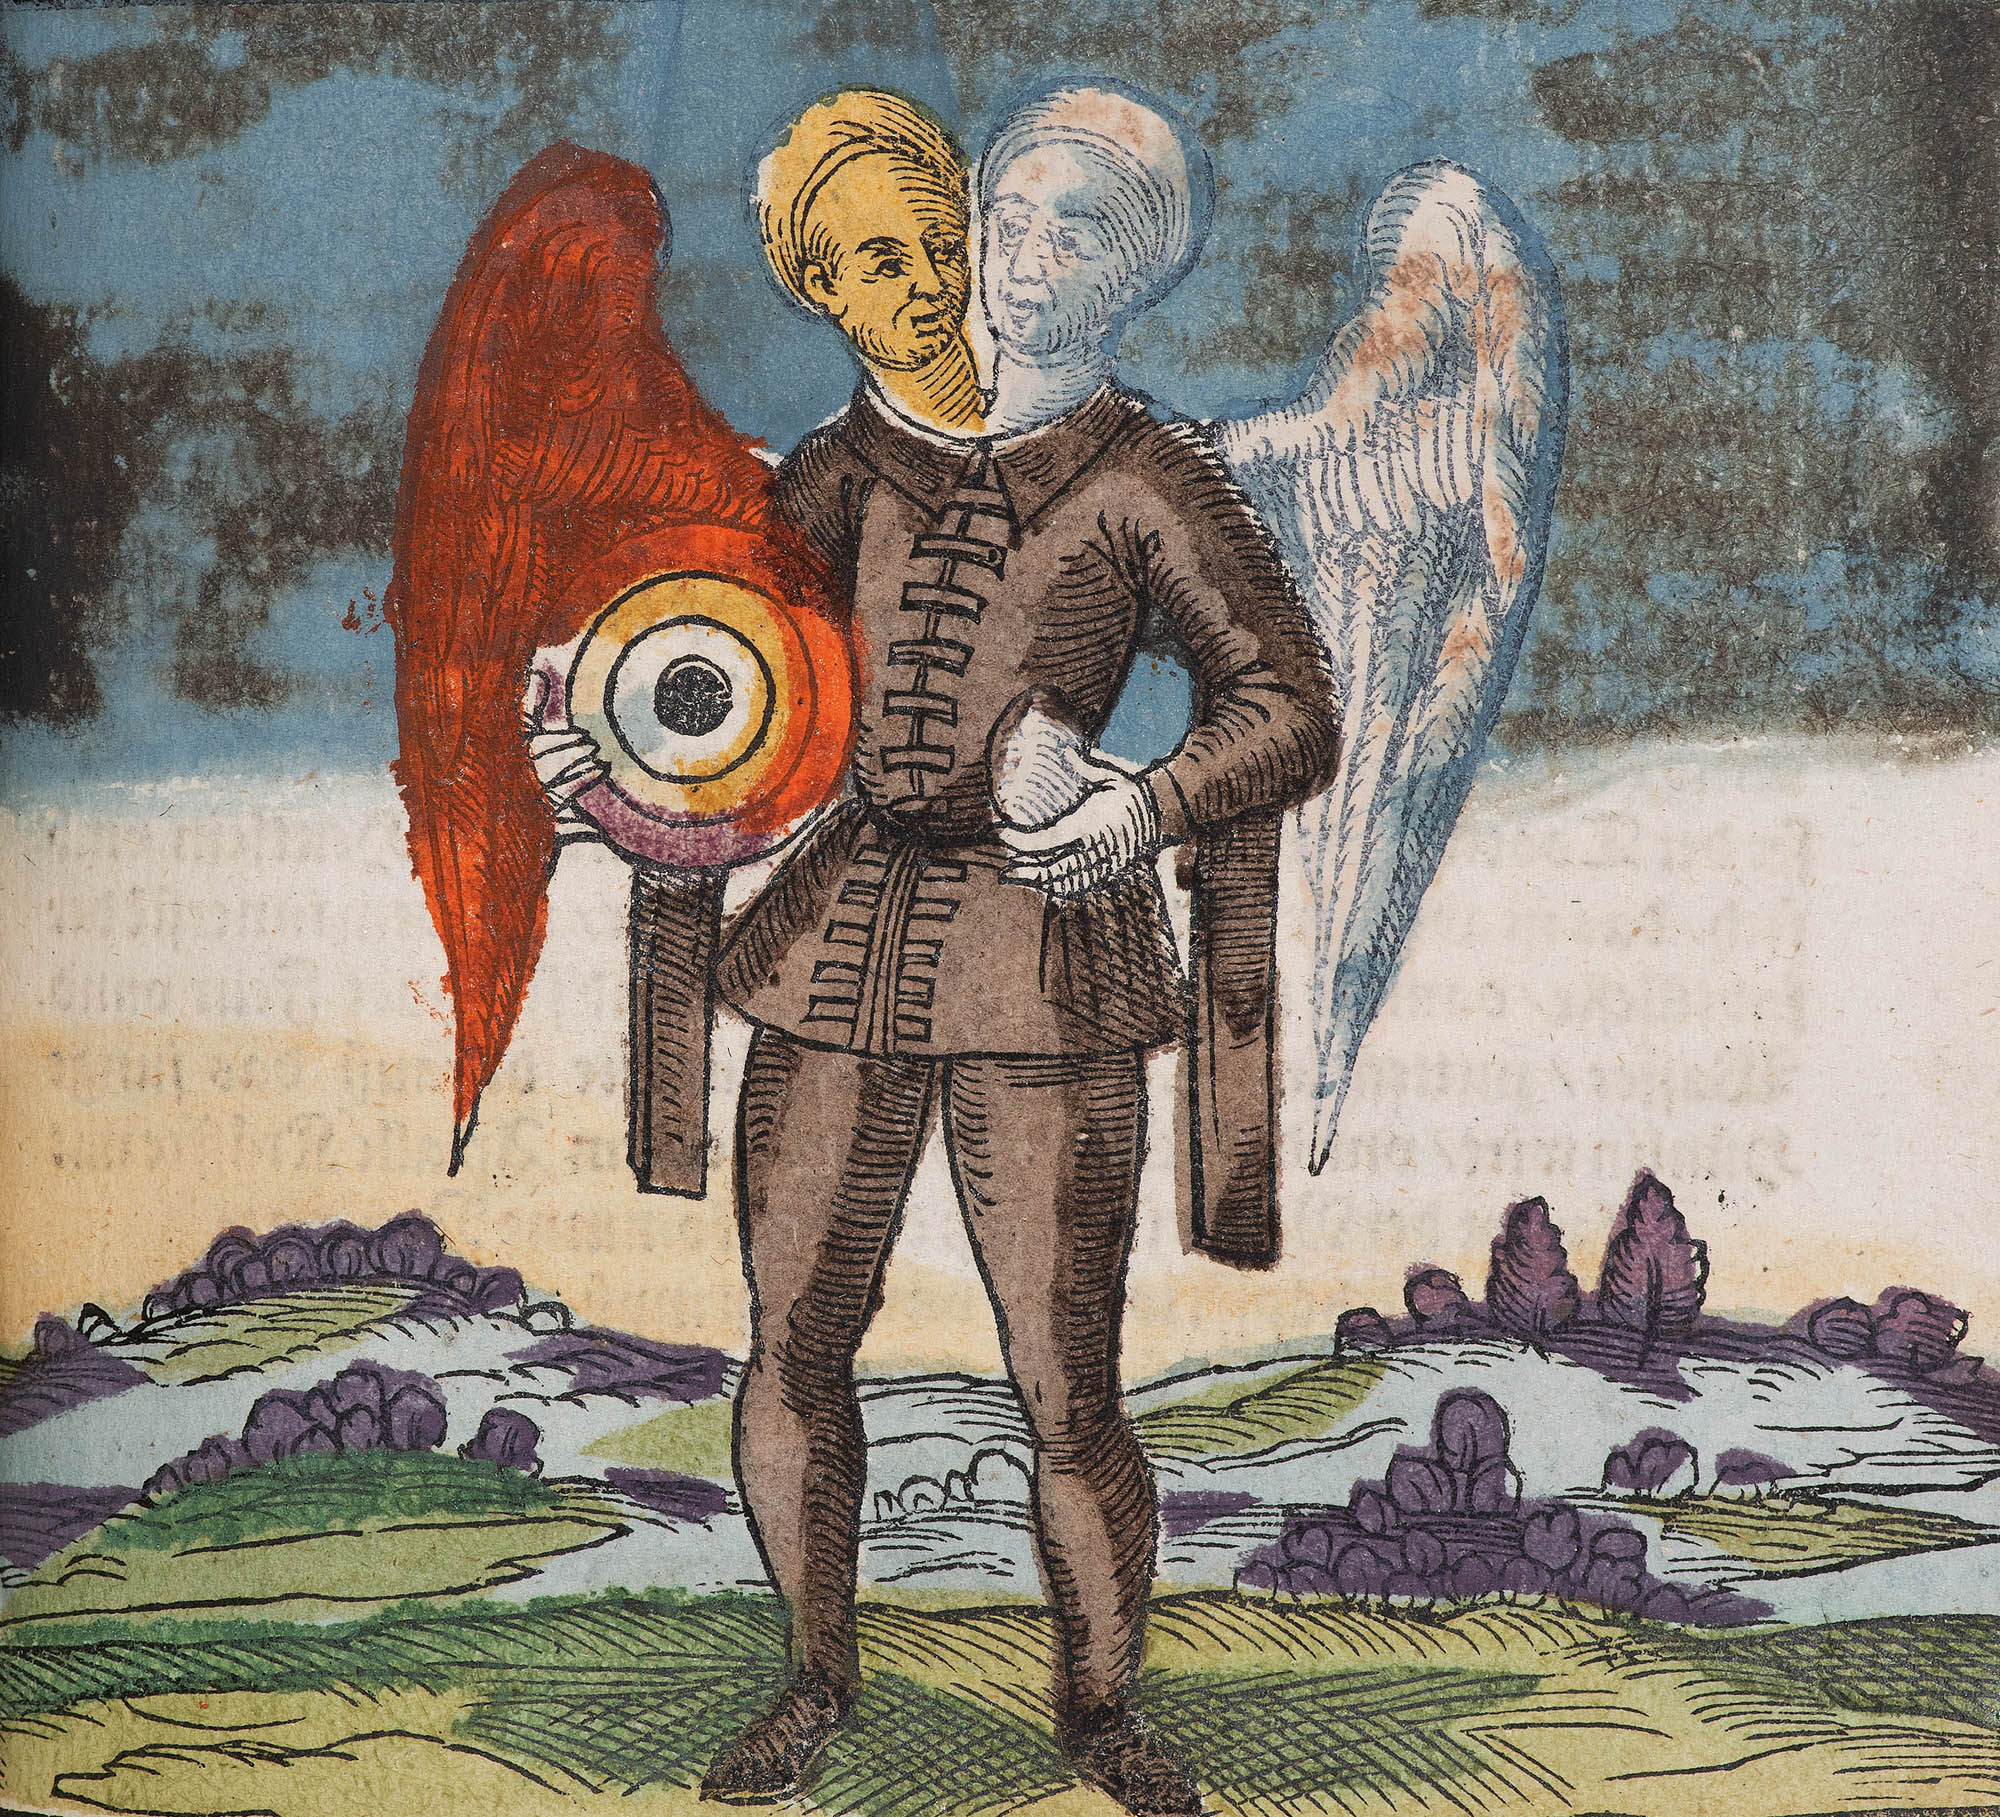 a book illustration of a two headed person with wings